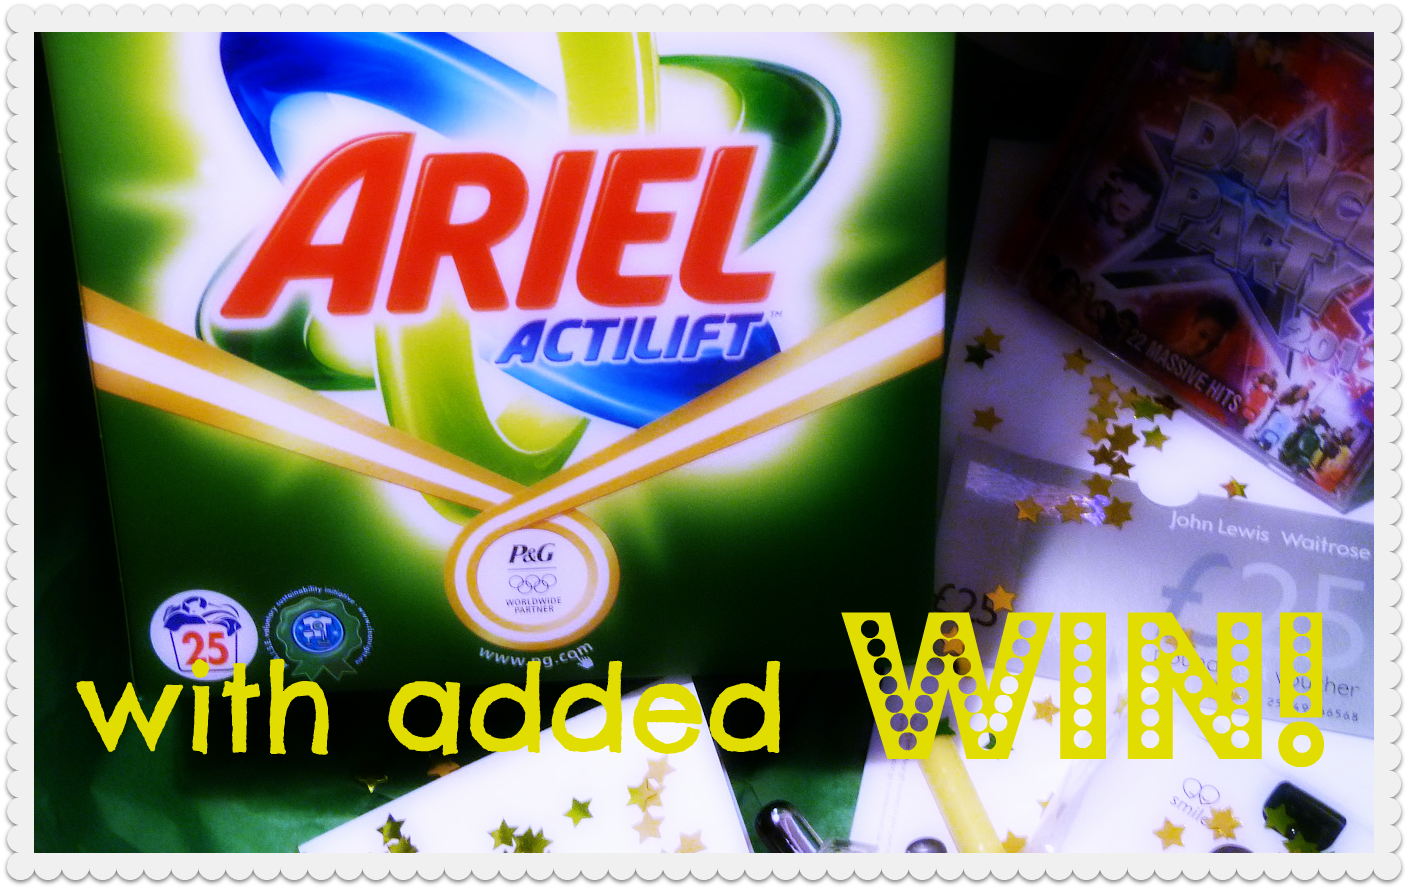 Ariel Powder Which? Best Buy for the third time